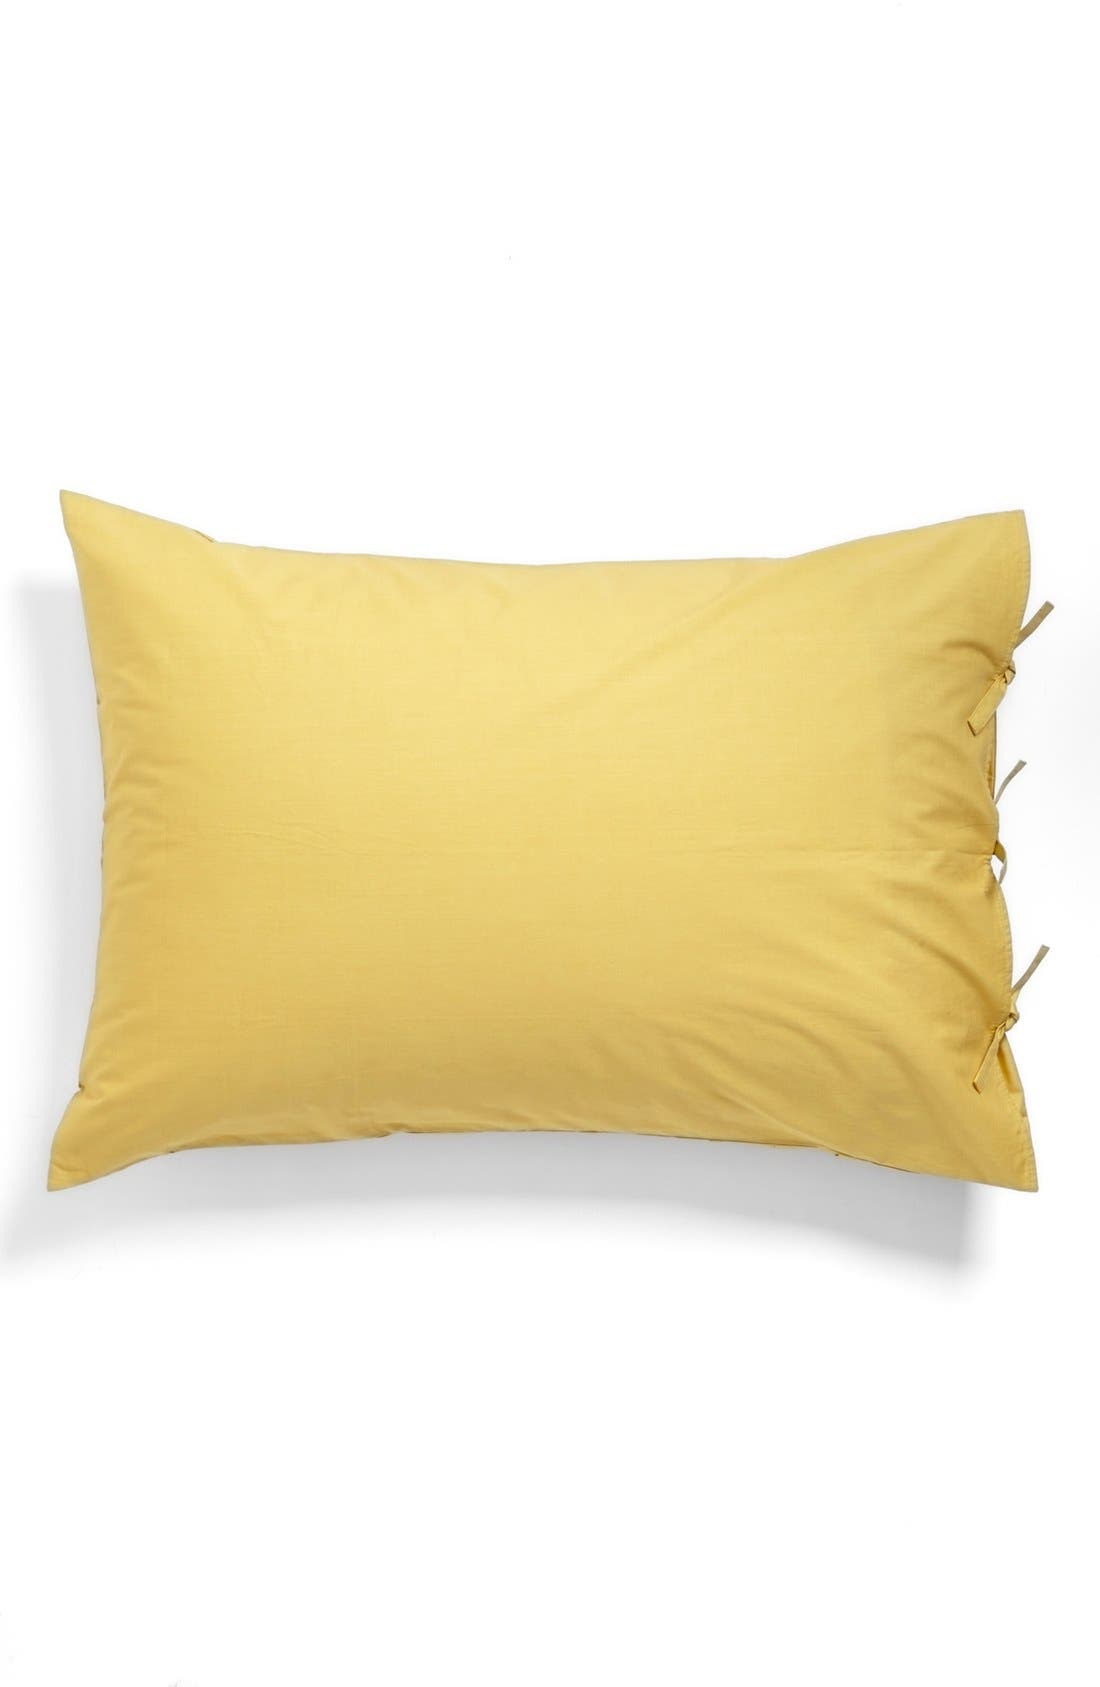 'Carson' Pillow Sham,                             Alternate thumbnail 8, color,